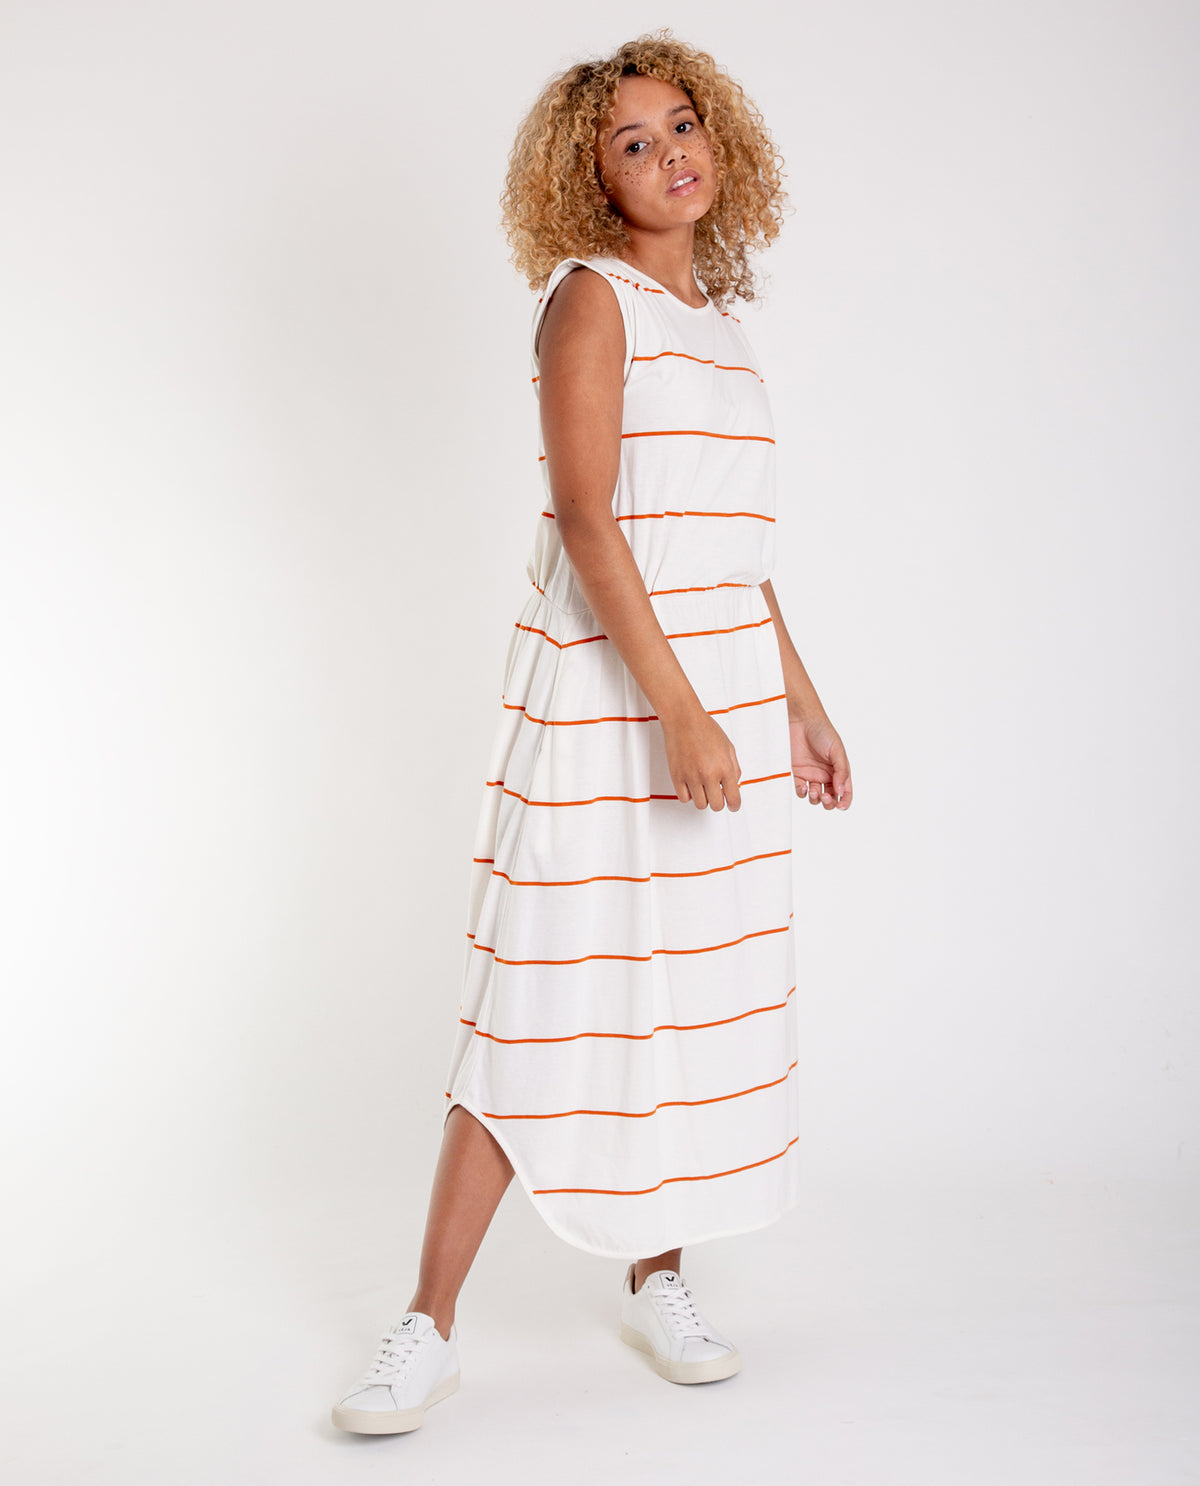 b1c76693ed15 MULBERRY-SUE Organic Cotton Dress In Off White And Madder